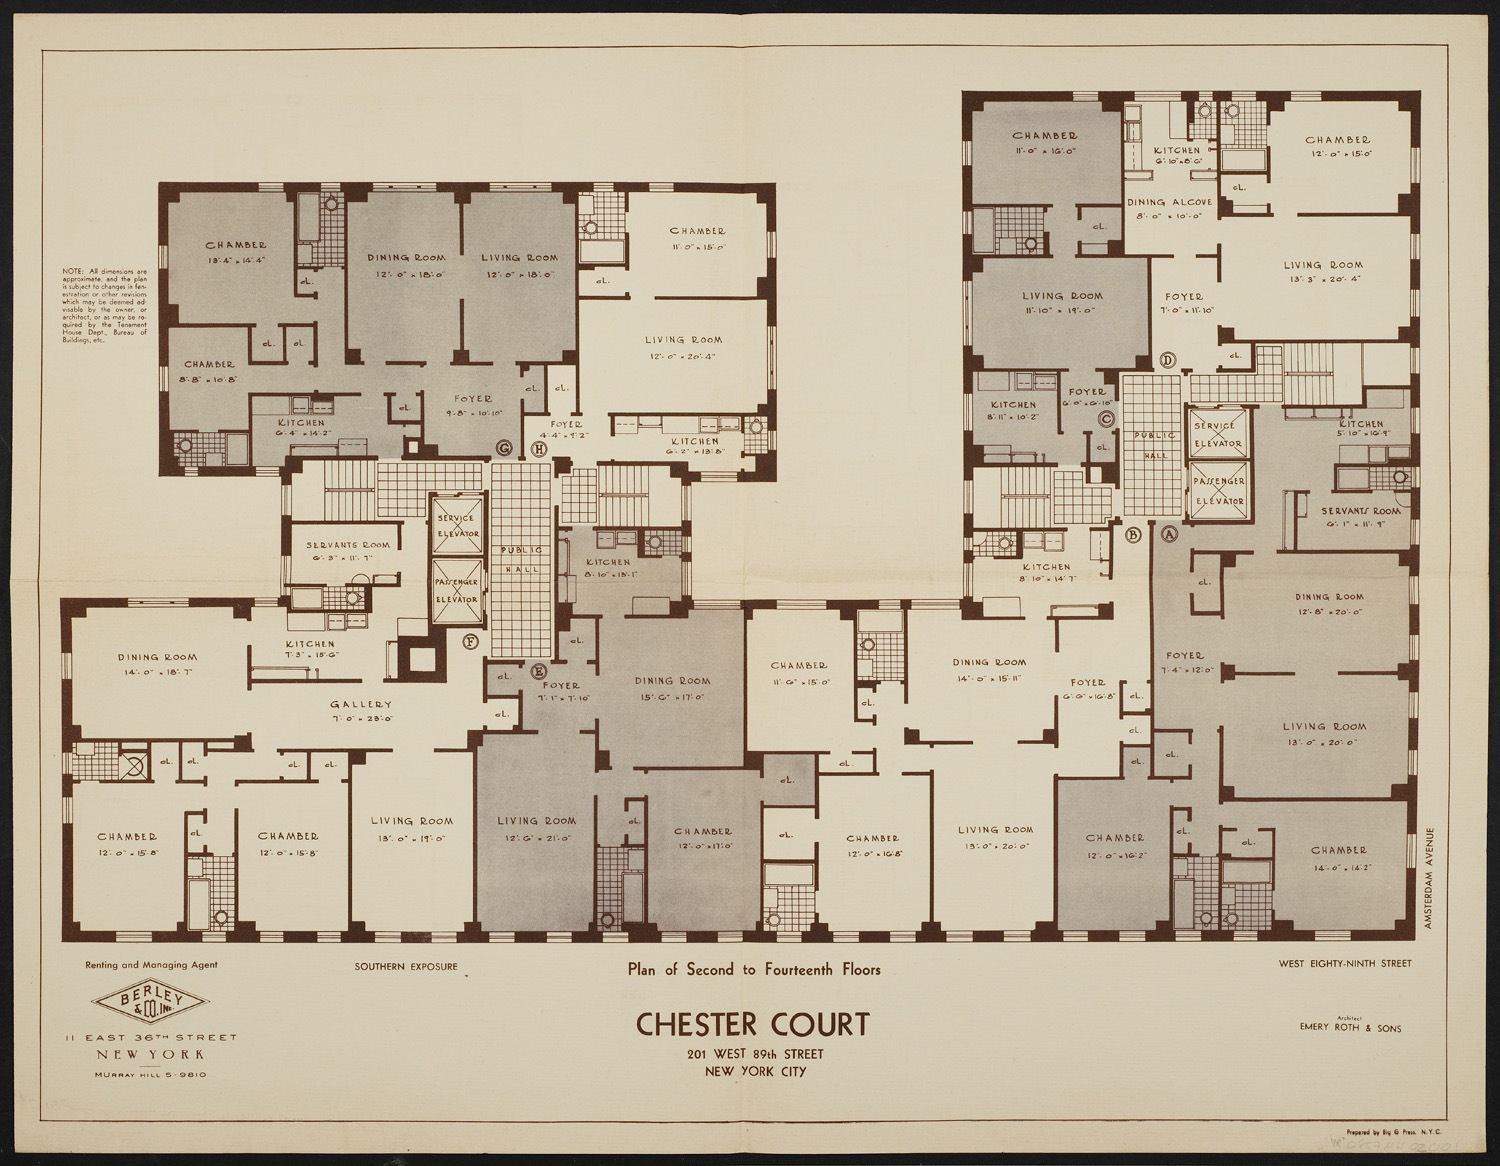 For Floor Plan